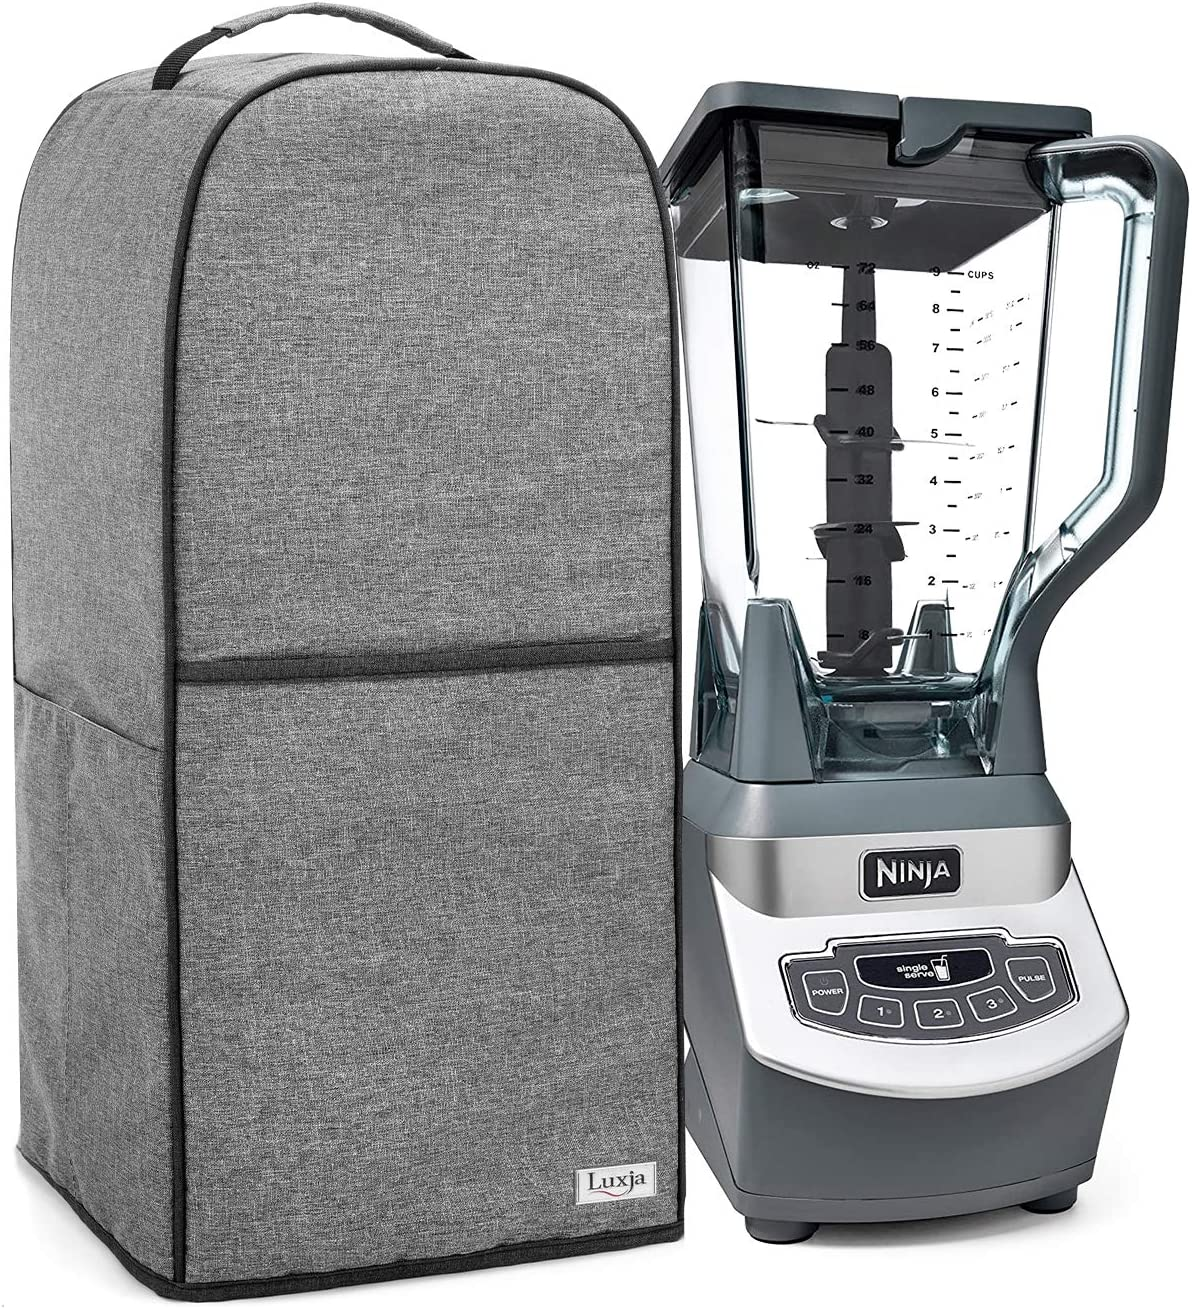 Luxja Blender Cover Compatible with Ninja Foodi, Cover for Ninja Foodi Blender, Gray